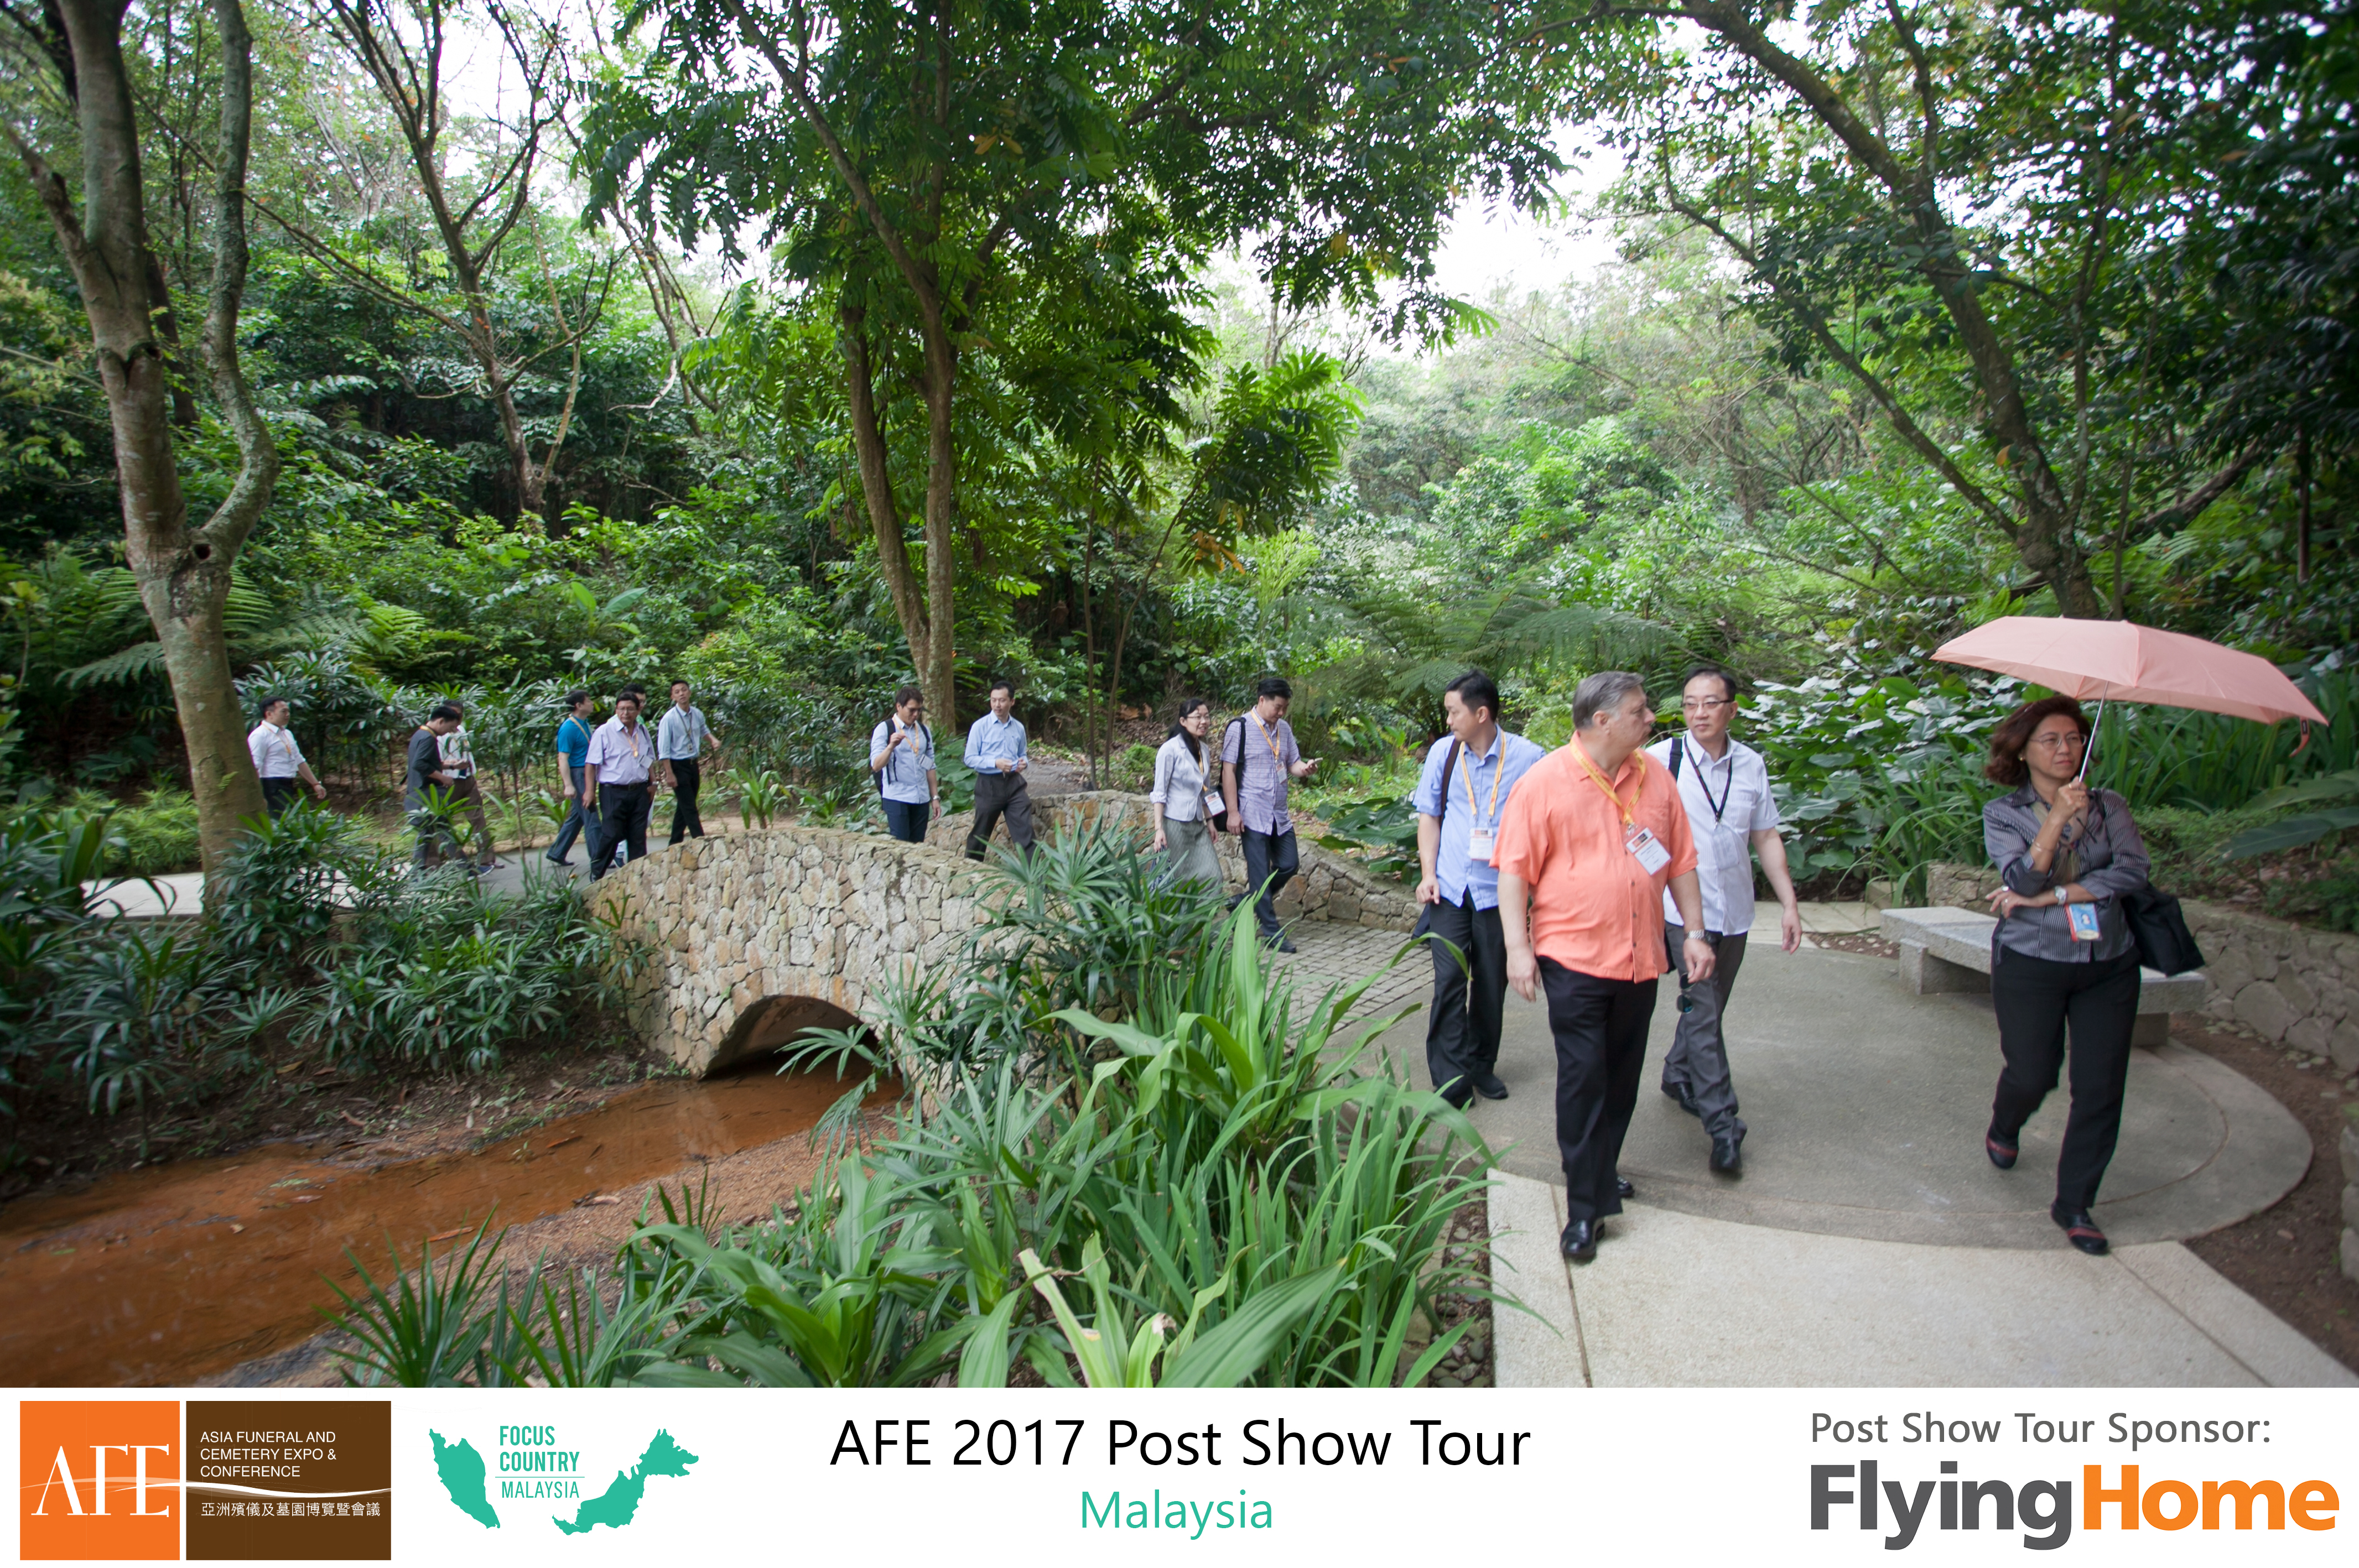 AFE Post Show Tour 2017 Day 3 -06